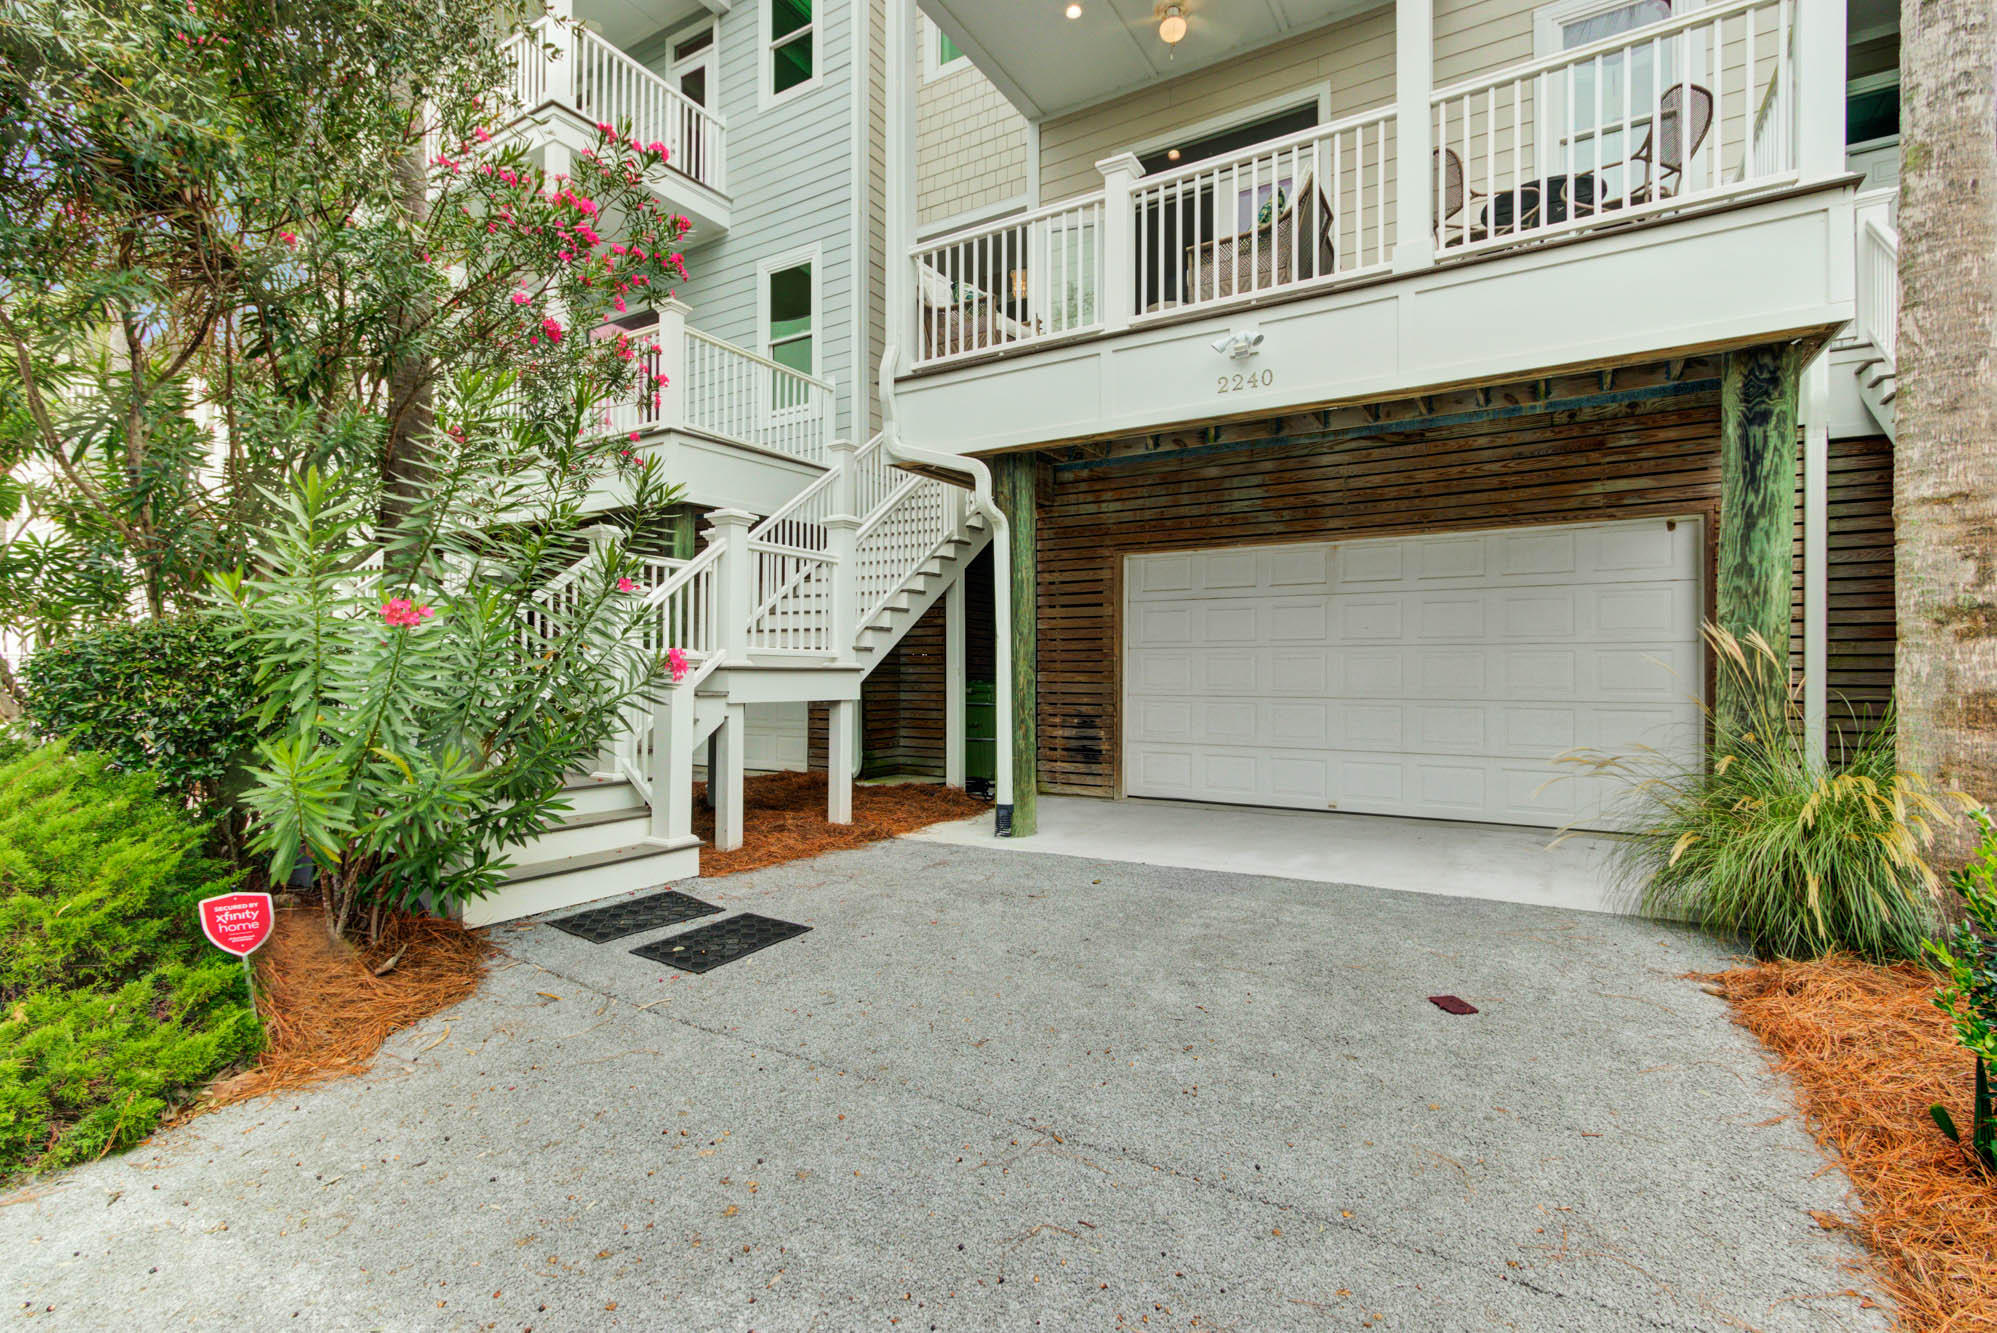 Folly Creek Place Homes For Sale - 2240 Folly, Folly Beach, SC - 38